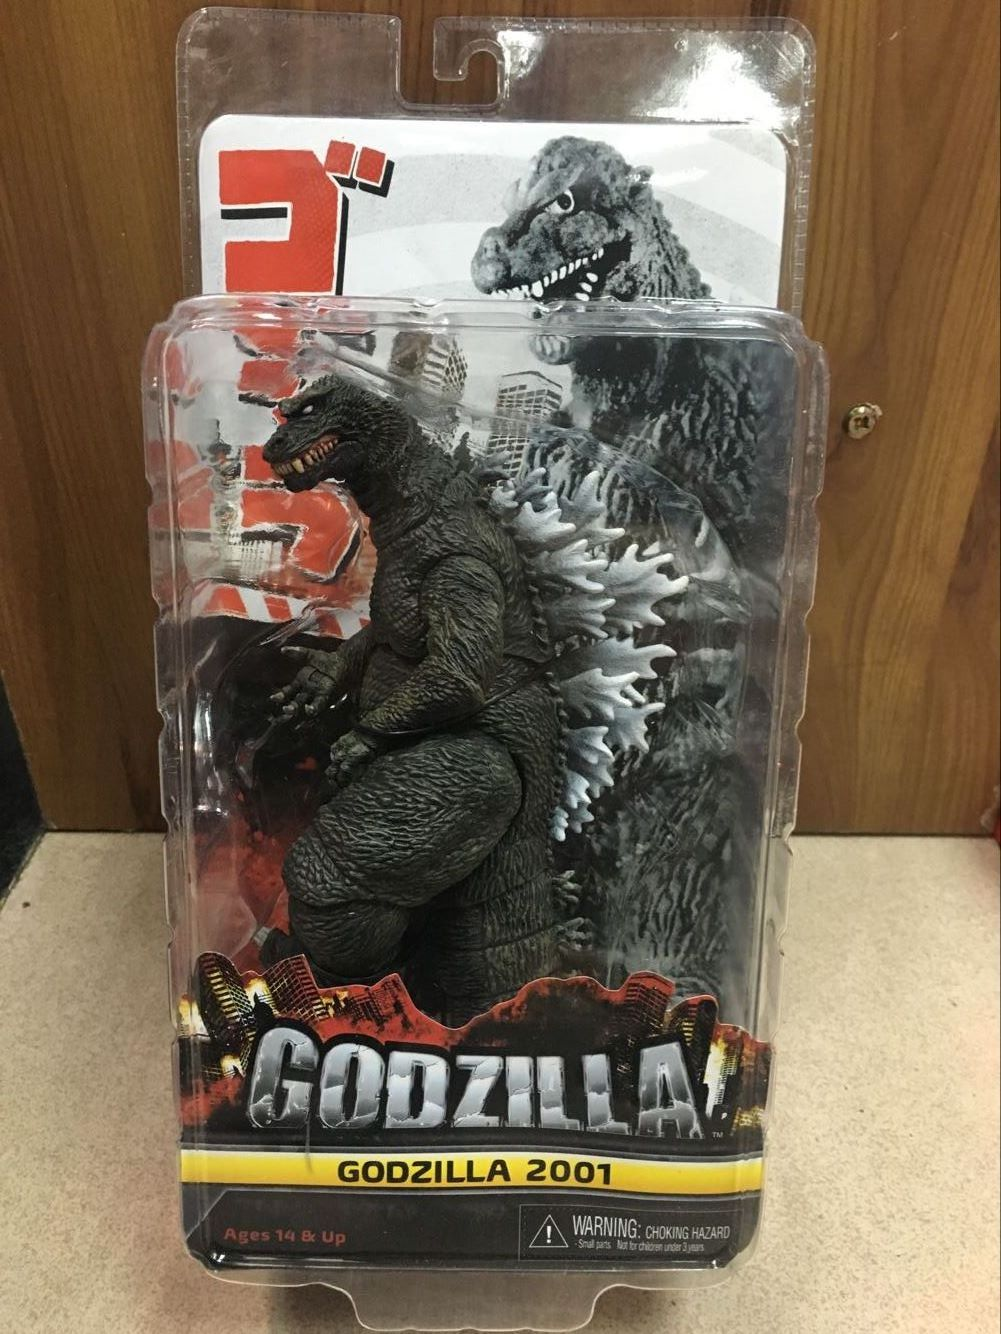 Free Shipping NECA Godzilla 2001 1954 PVC Action Figure Collectible Model Toy 8 20CM Classic Toy KT3378 neca epic marvel deadpool ultimate collectible 1 4 scale action figure model toy 16 45cm ems free shipping